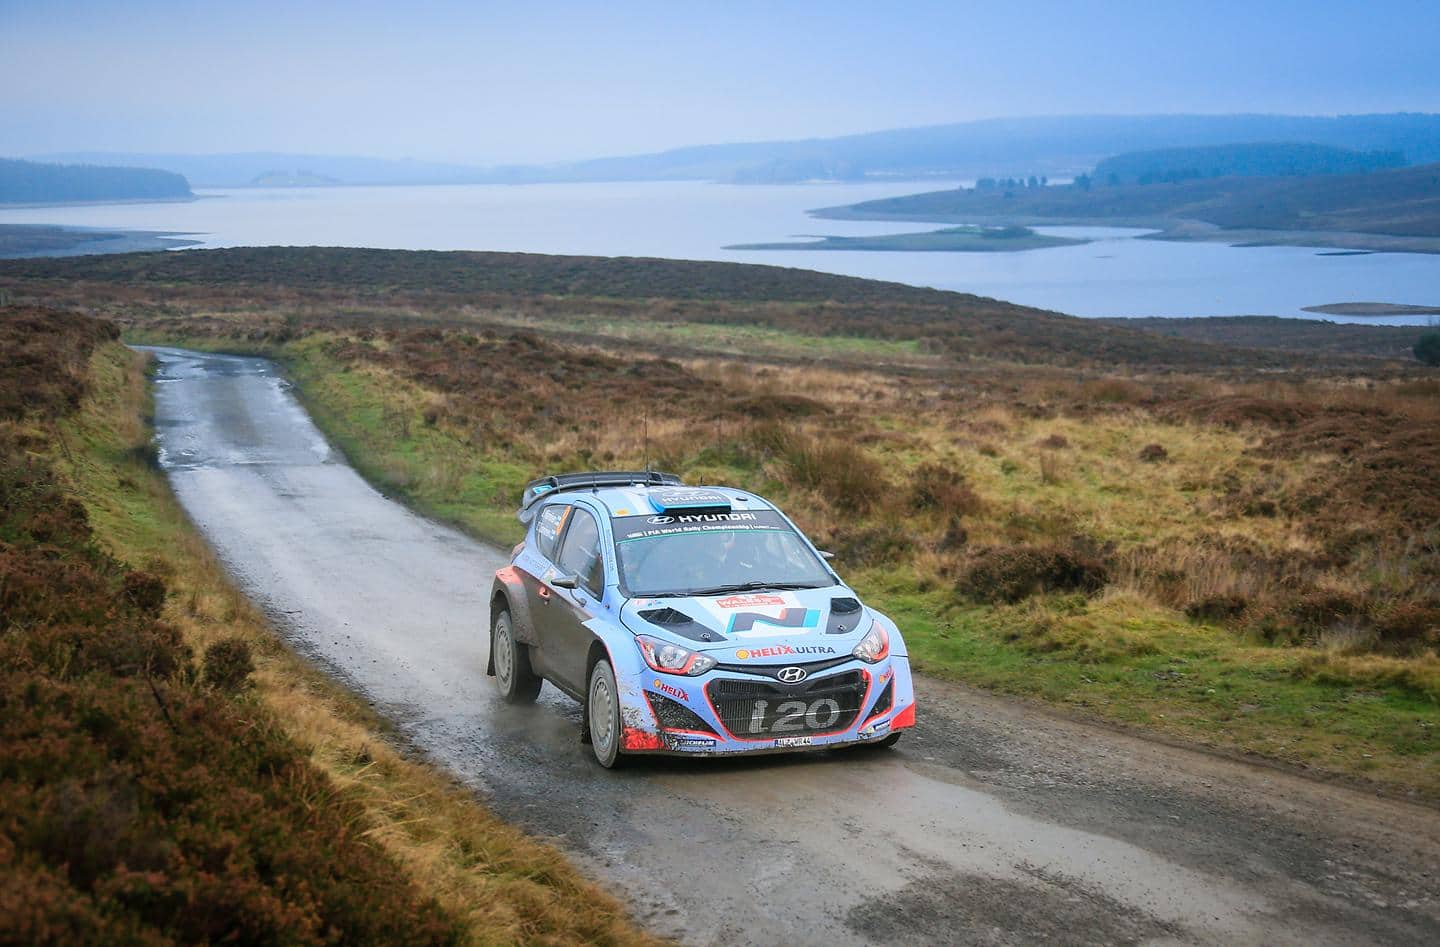 Hyundai Shell World Rally Team brings debut WRC season to a close with 3 car finish in GB 3